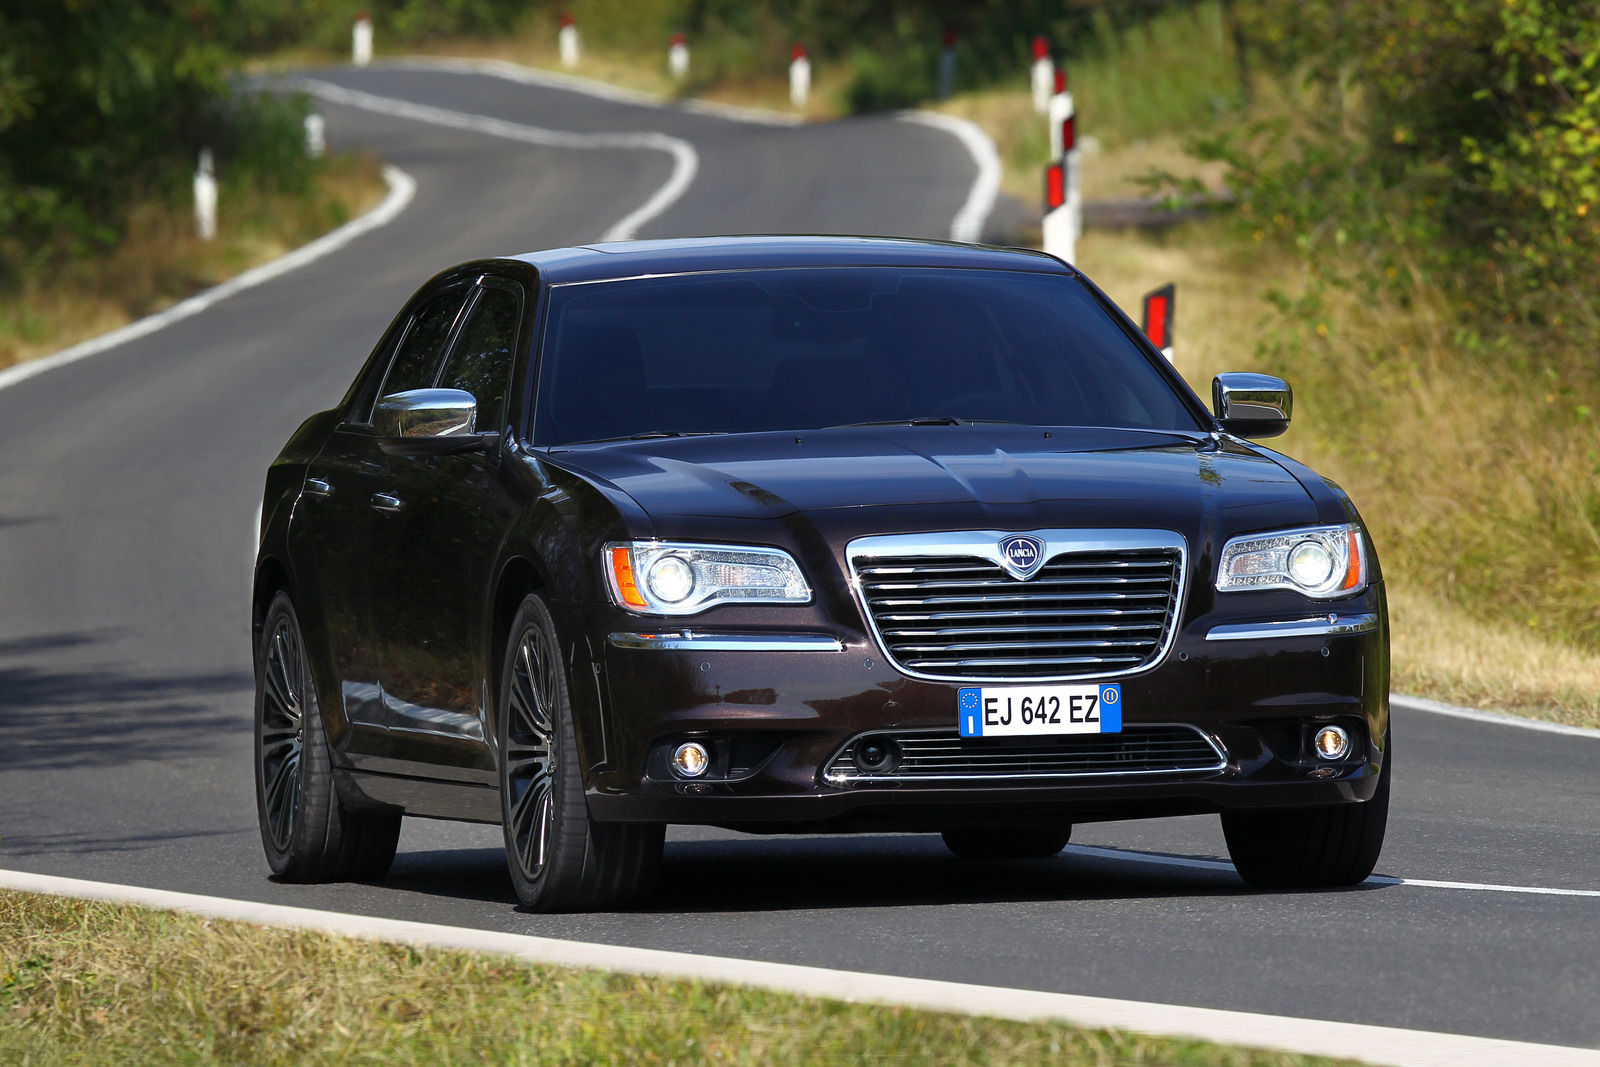 2012 lancia thema arrives on european market autoevolution. Black Bedroom Furniture Sets. Home Design Ideas